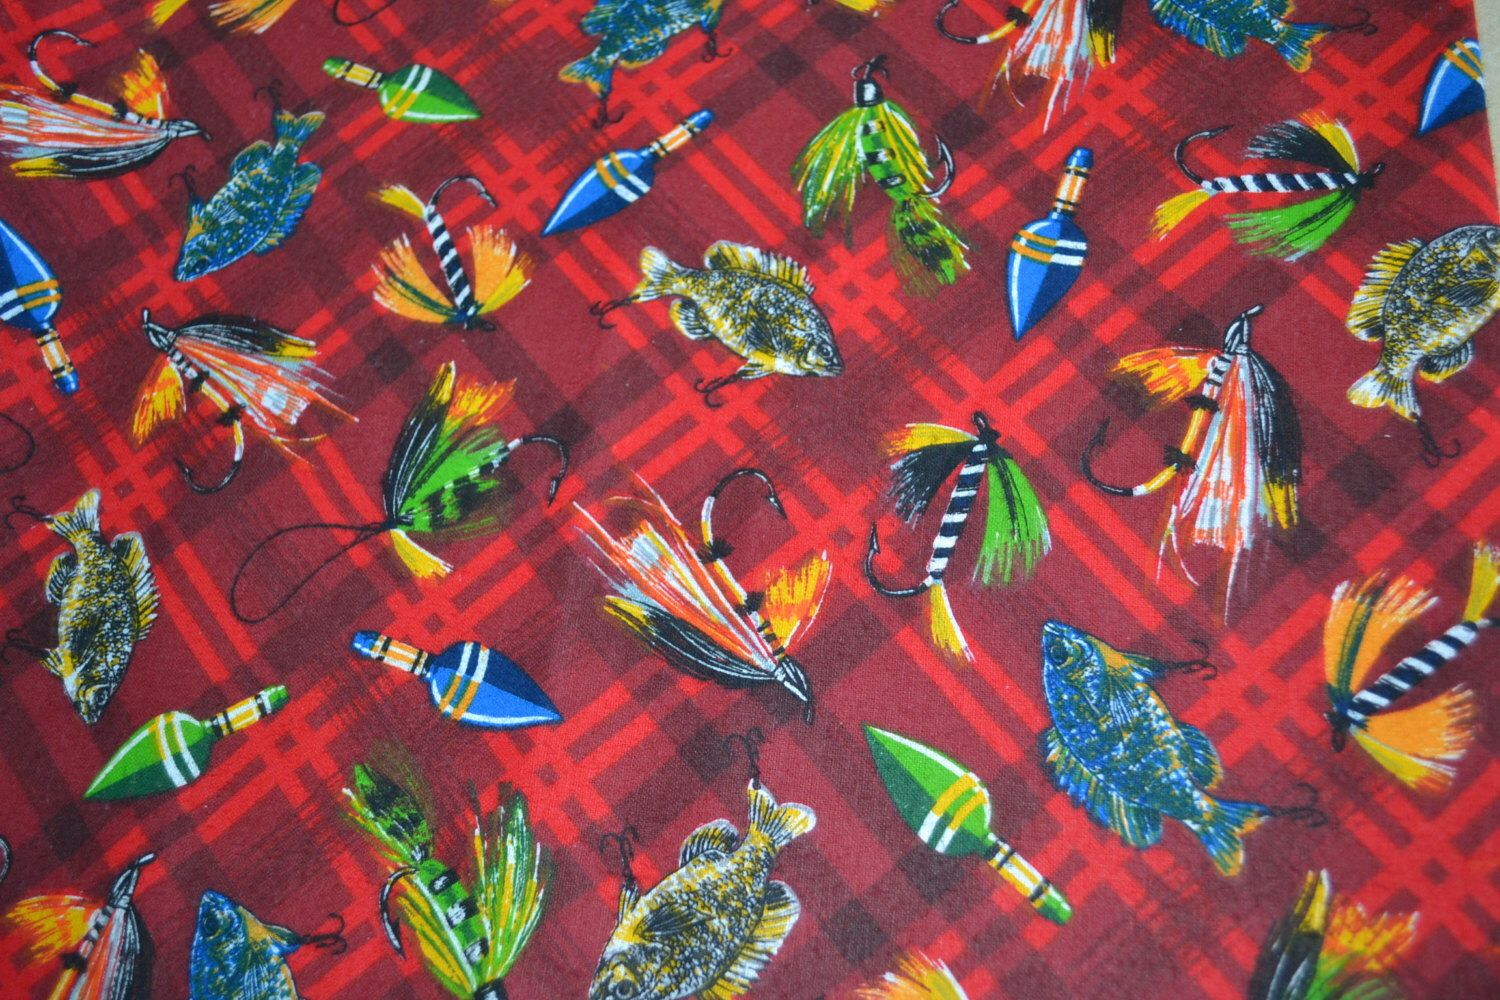 Red flannel fabric  Snuggle Flannel Fishing Lures on Red Plaid Cotton Print Fabric By